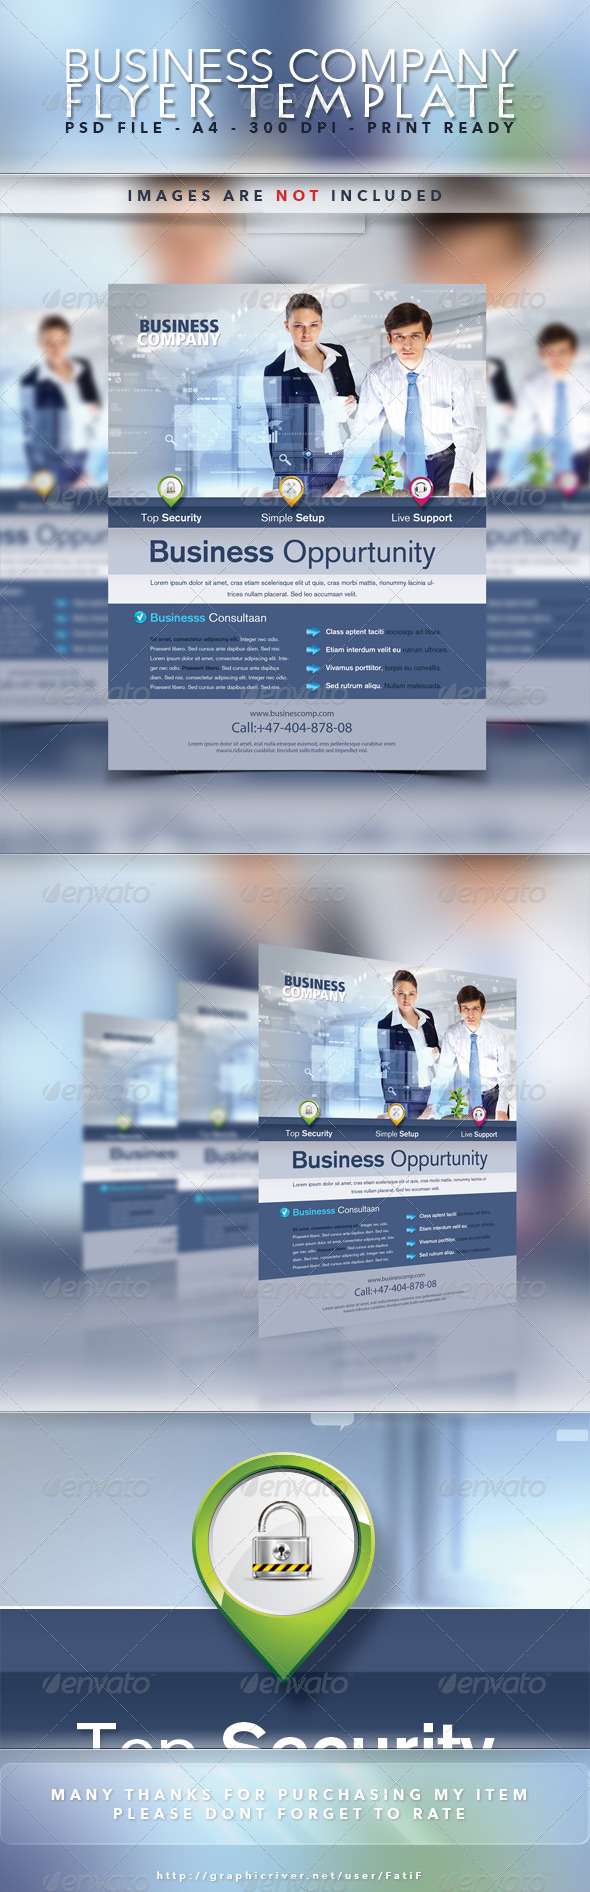 Business Company Flyer Template - Corporate Flyers